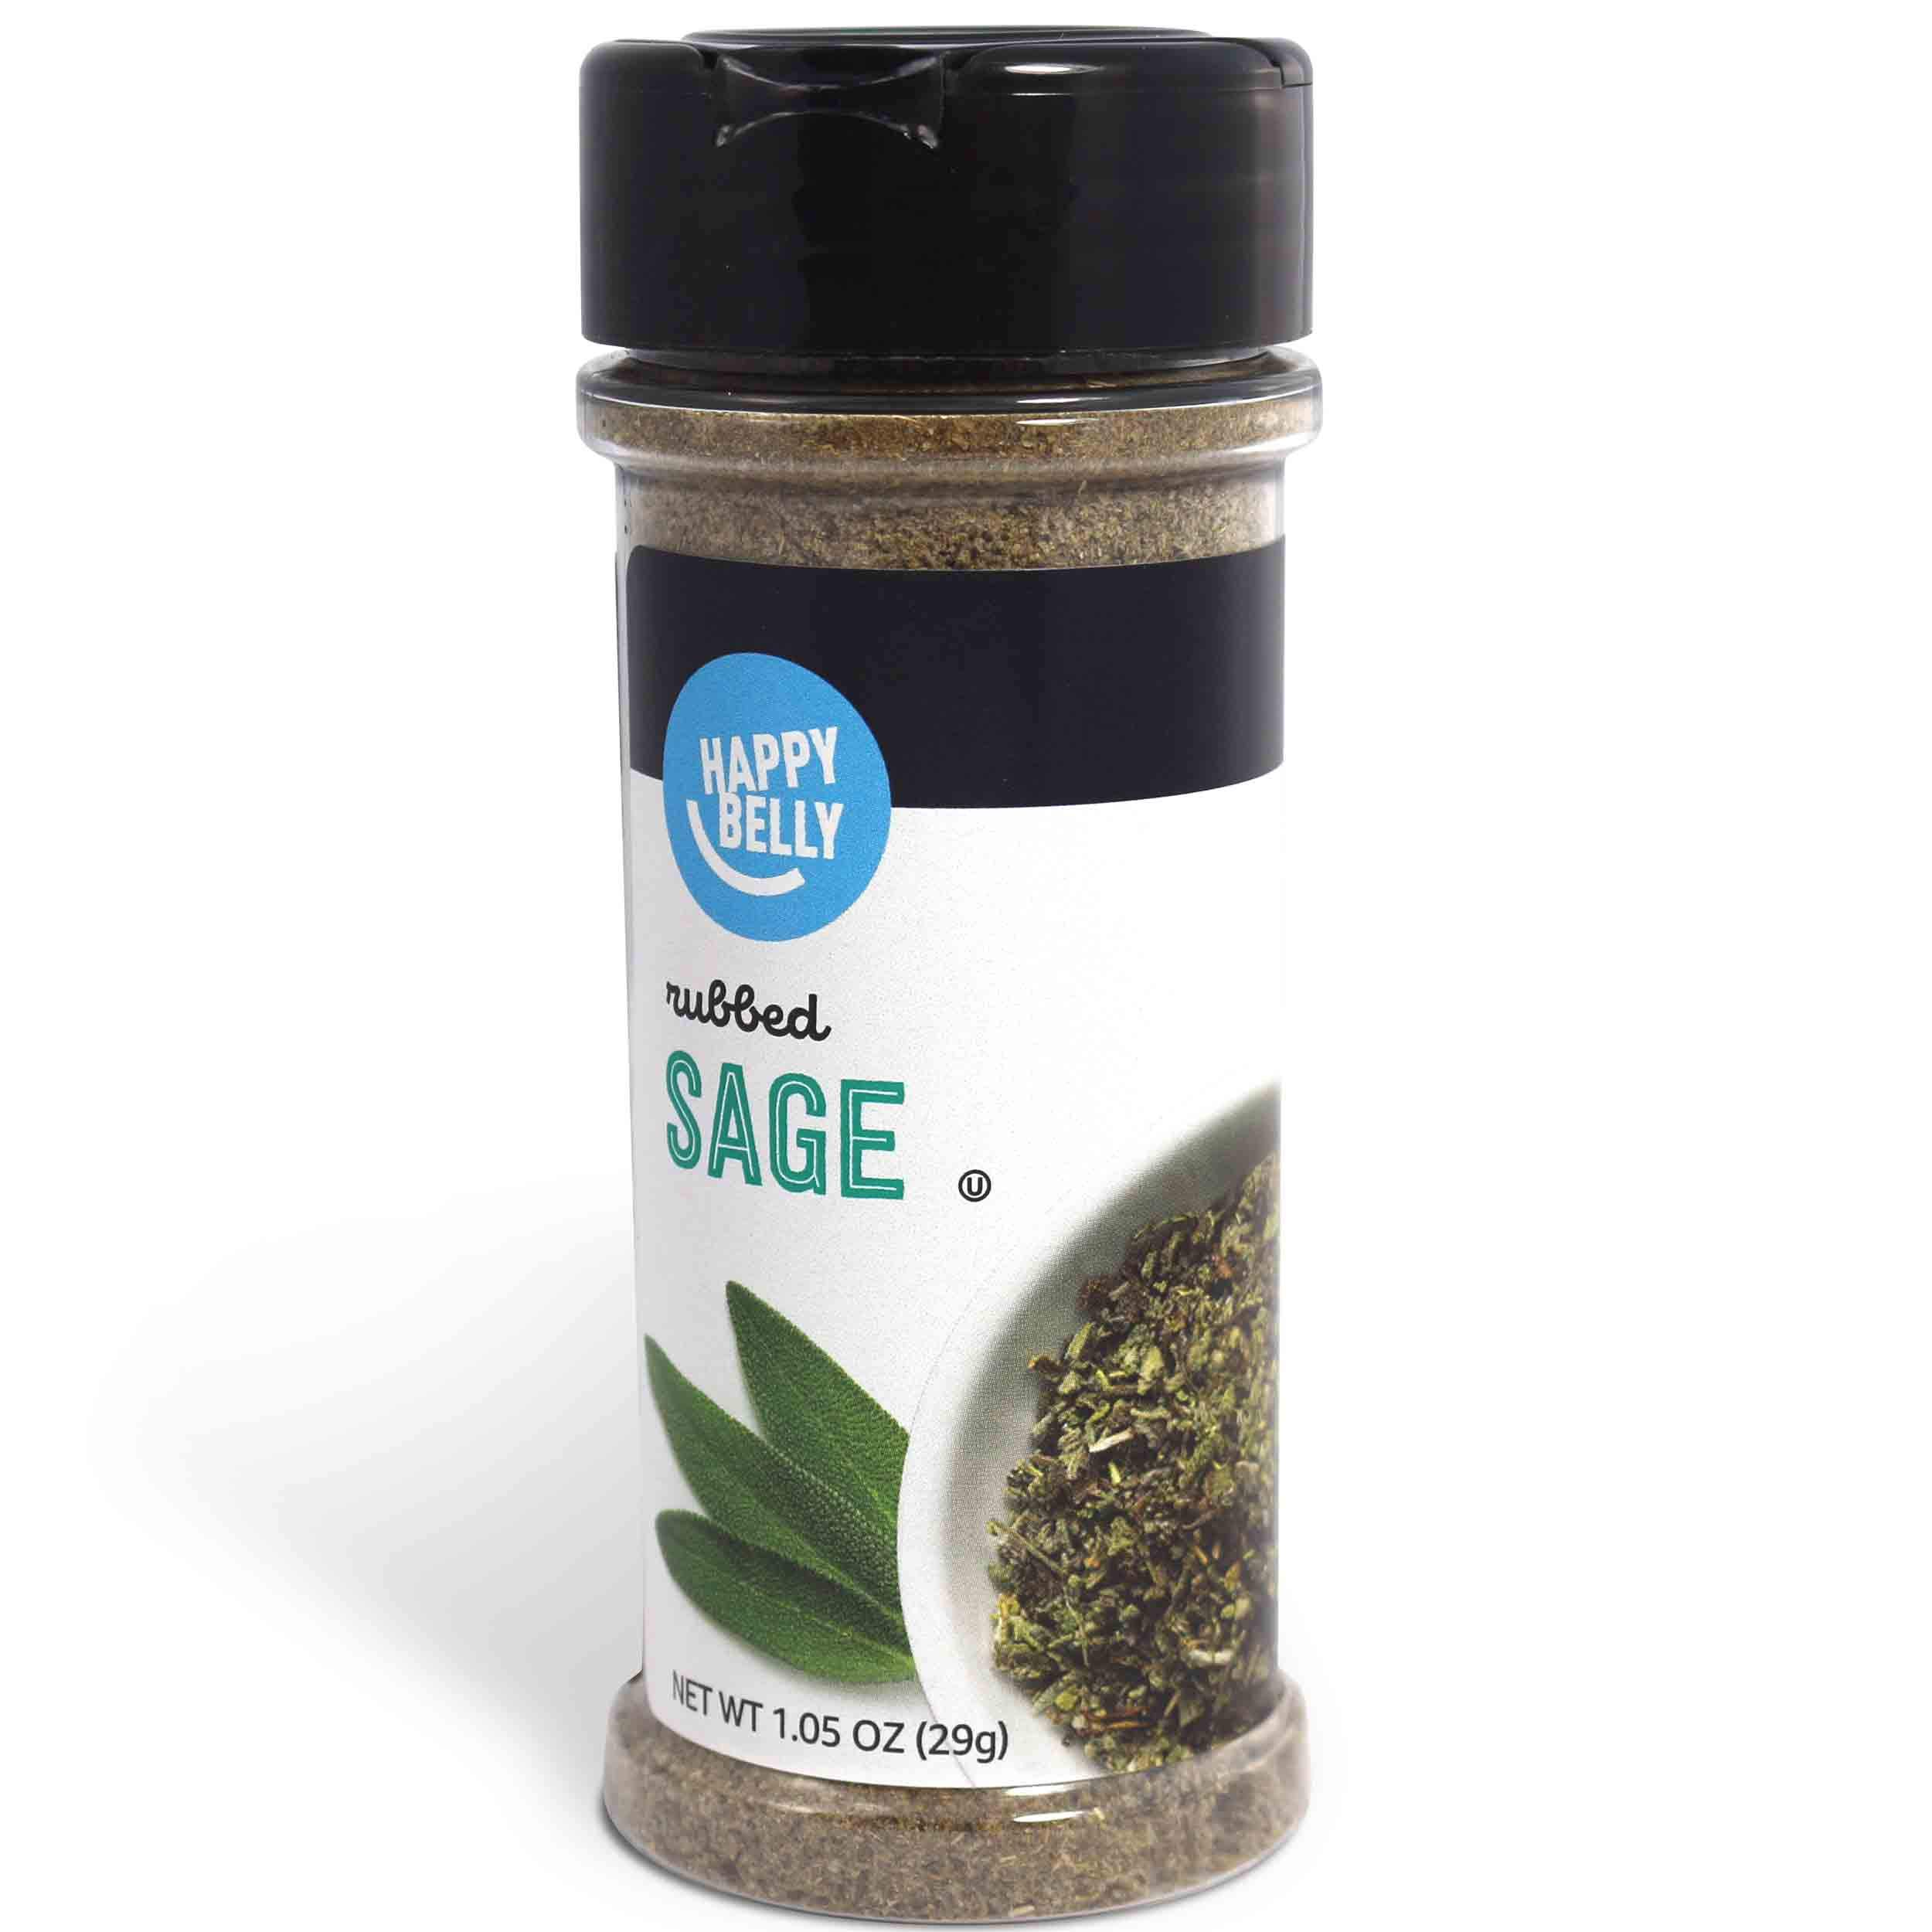 Amazon Brand - Happy Belly Sage, Rubbed 1.05 Ounces